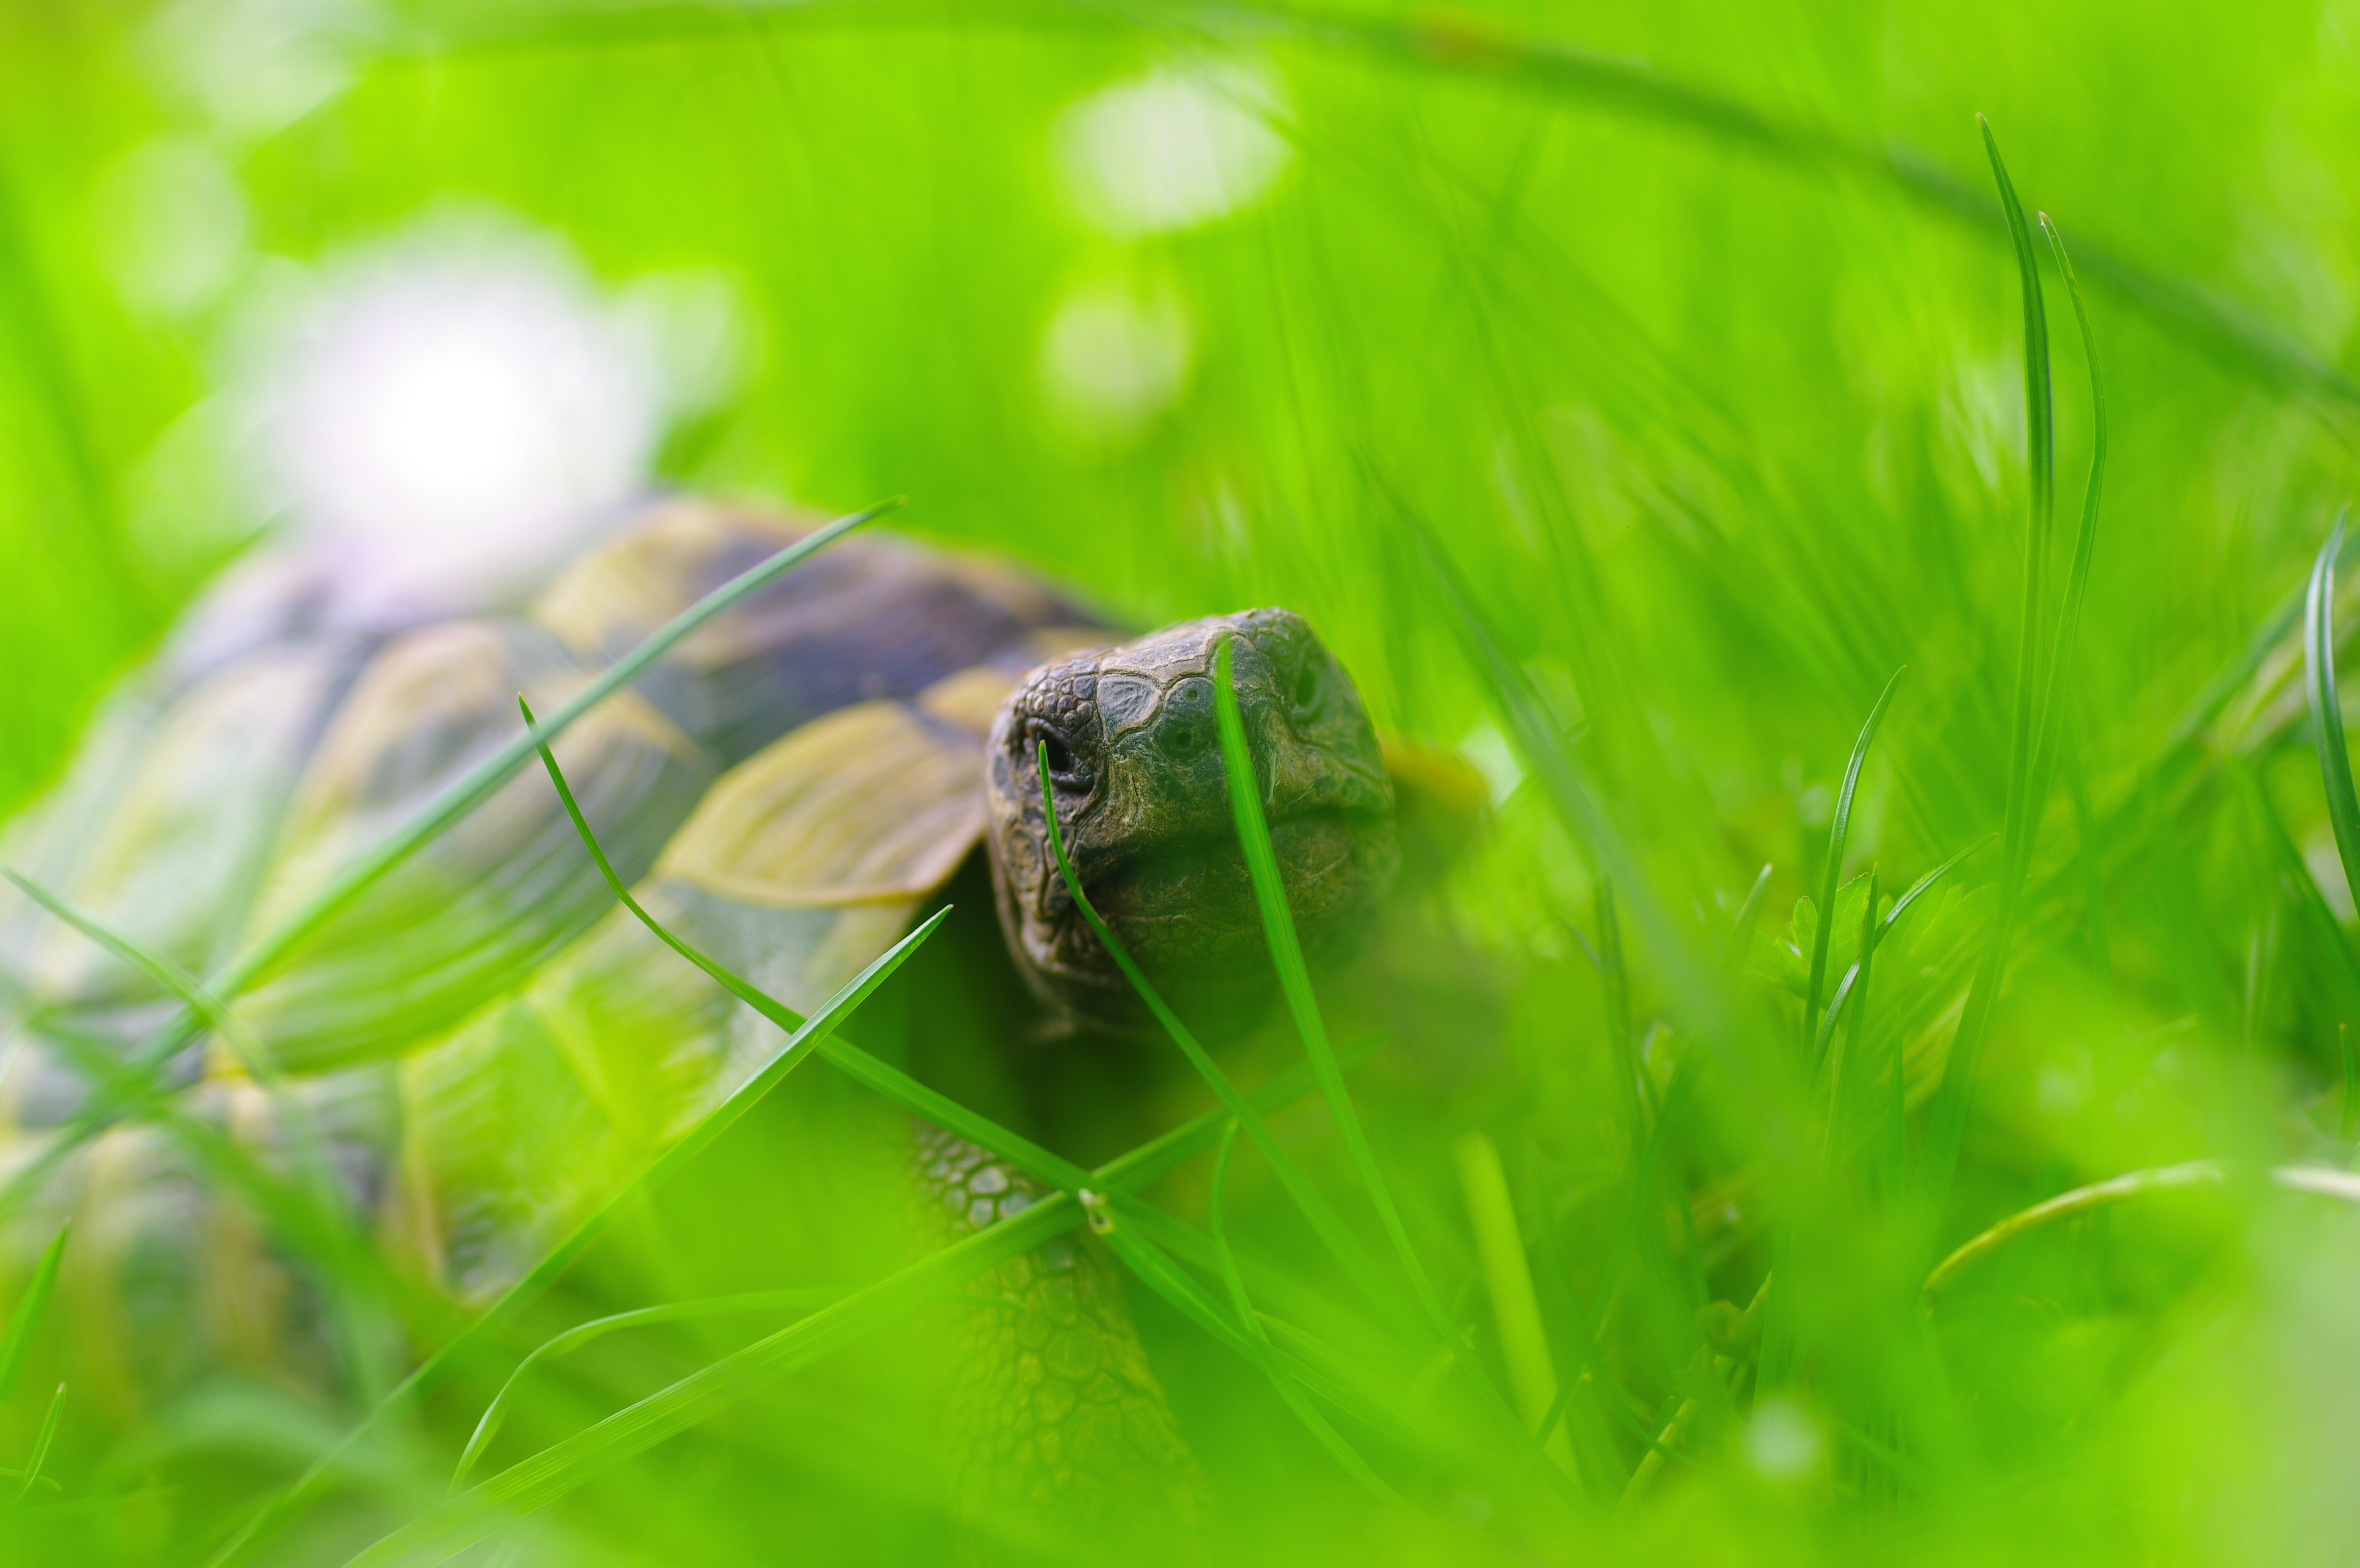 brown turtle on grass